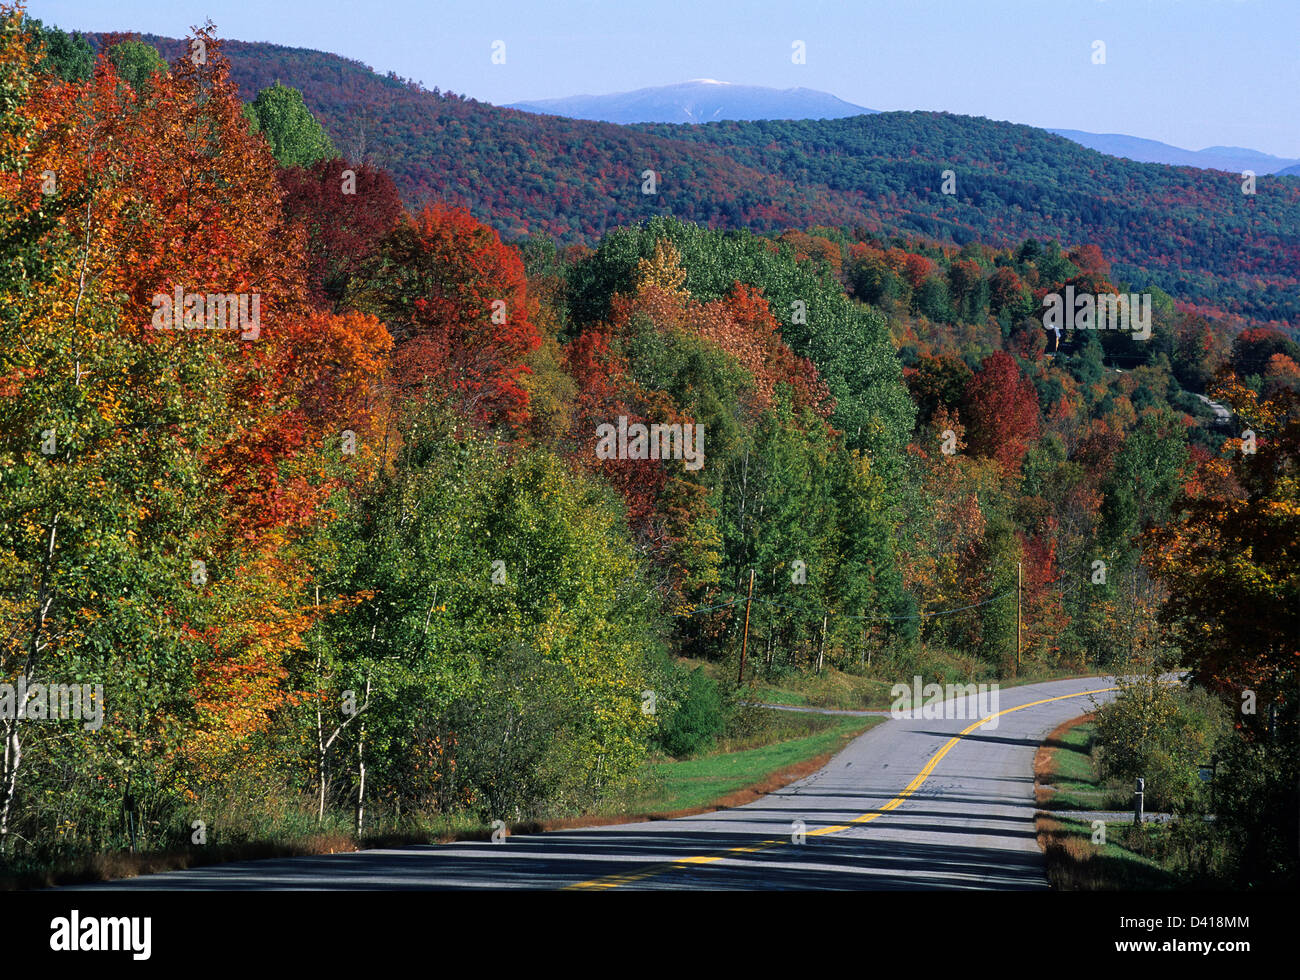 Elk280-1080 Vermont, East Vermont, rural highway with autumn foliage - Stock Image